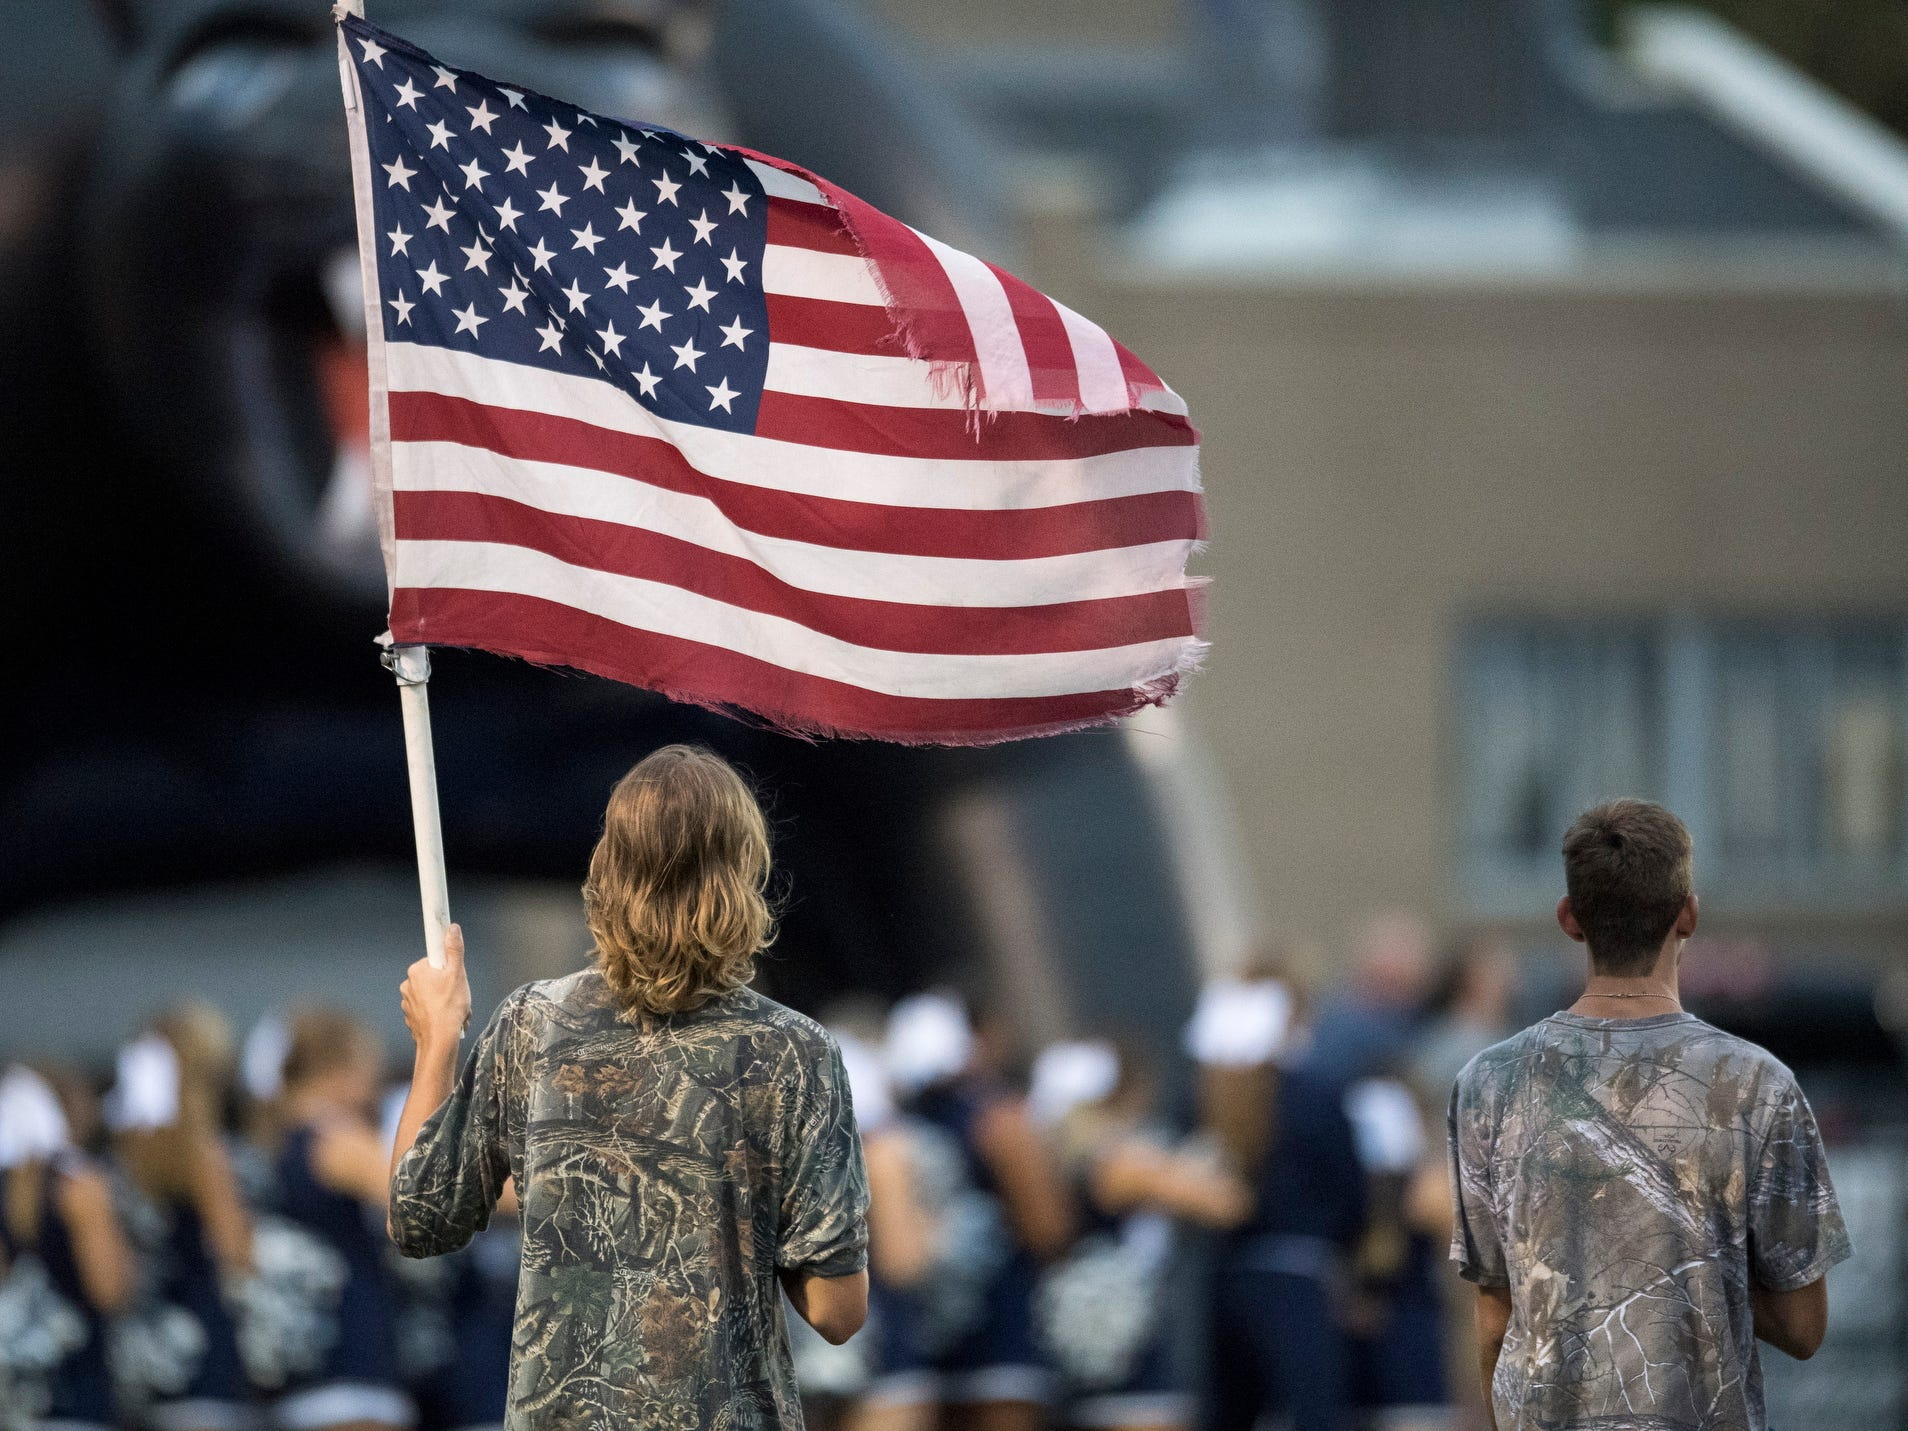 Reitz senior Max Ashby waves the flag before the Reitz Panthers take the field, Friday, September 7, 2018.